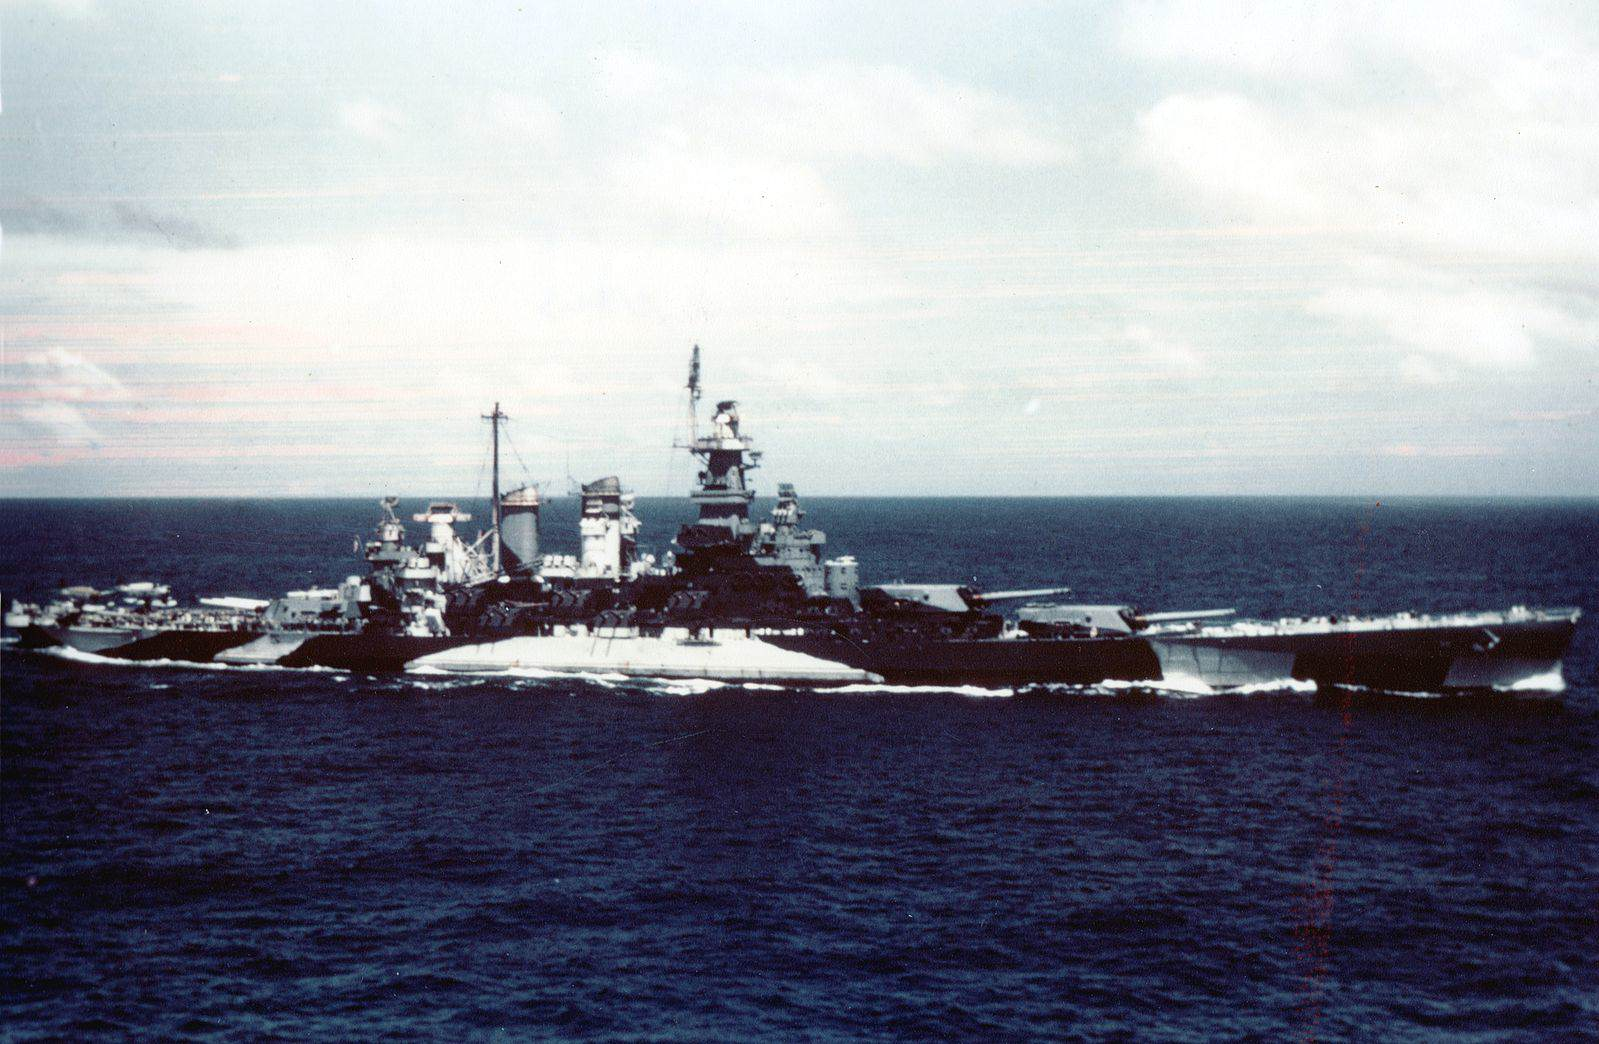 USS North Carolina (BB 55) underway in the Gilbert islands, November 1943 - Le BB55 North Carolina lors de l'opération aux Gilberts en 1943, avec son camouflage